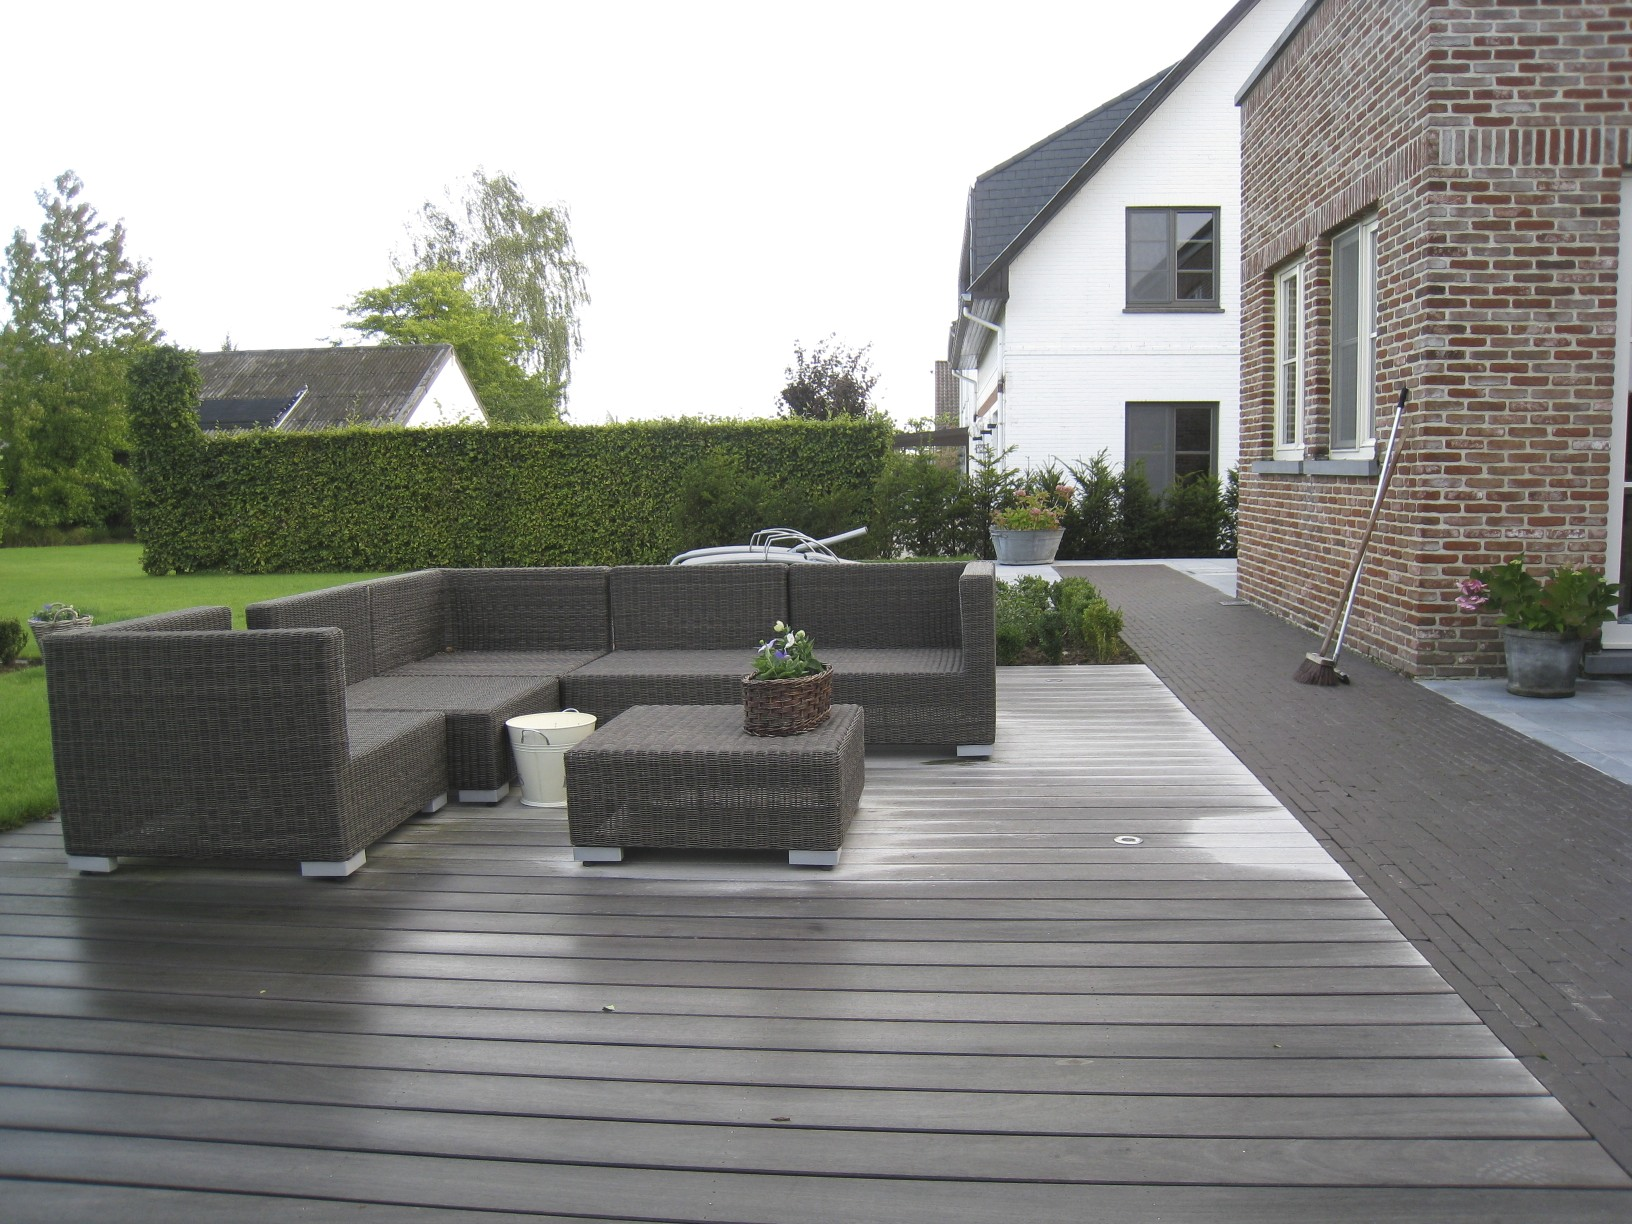 Gardenz tuin design ben for Tuin modern design